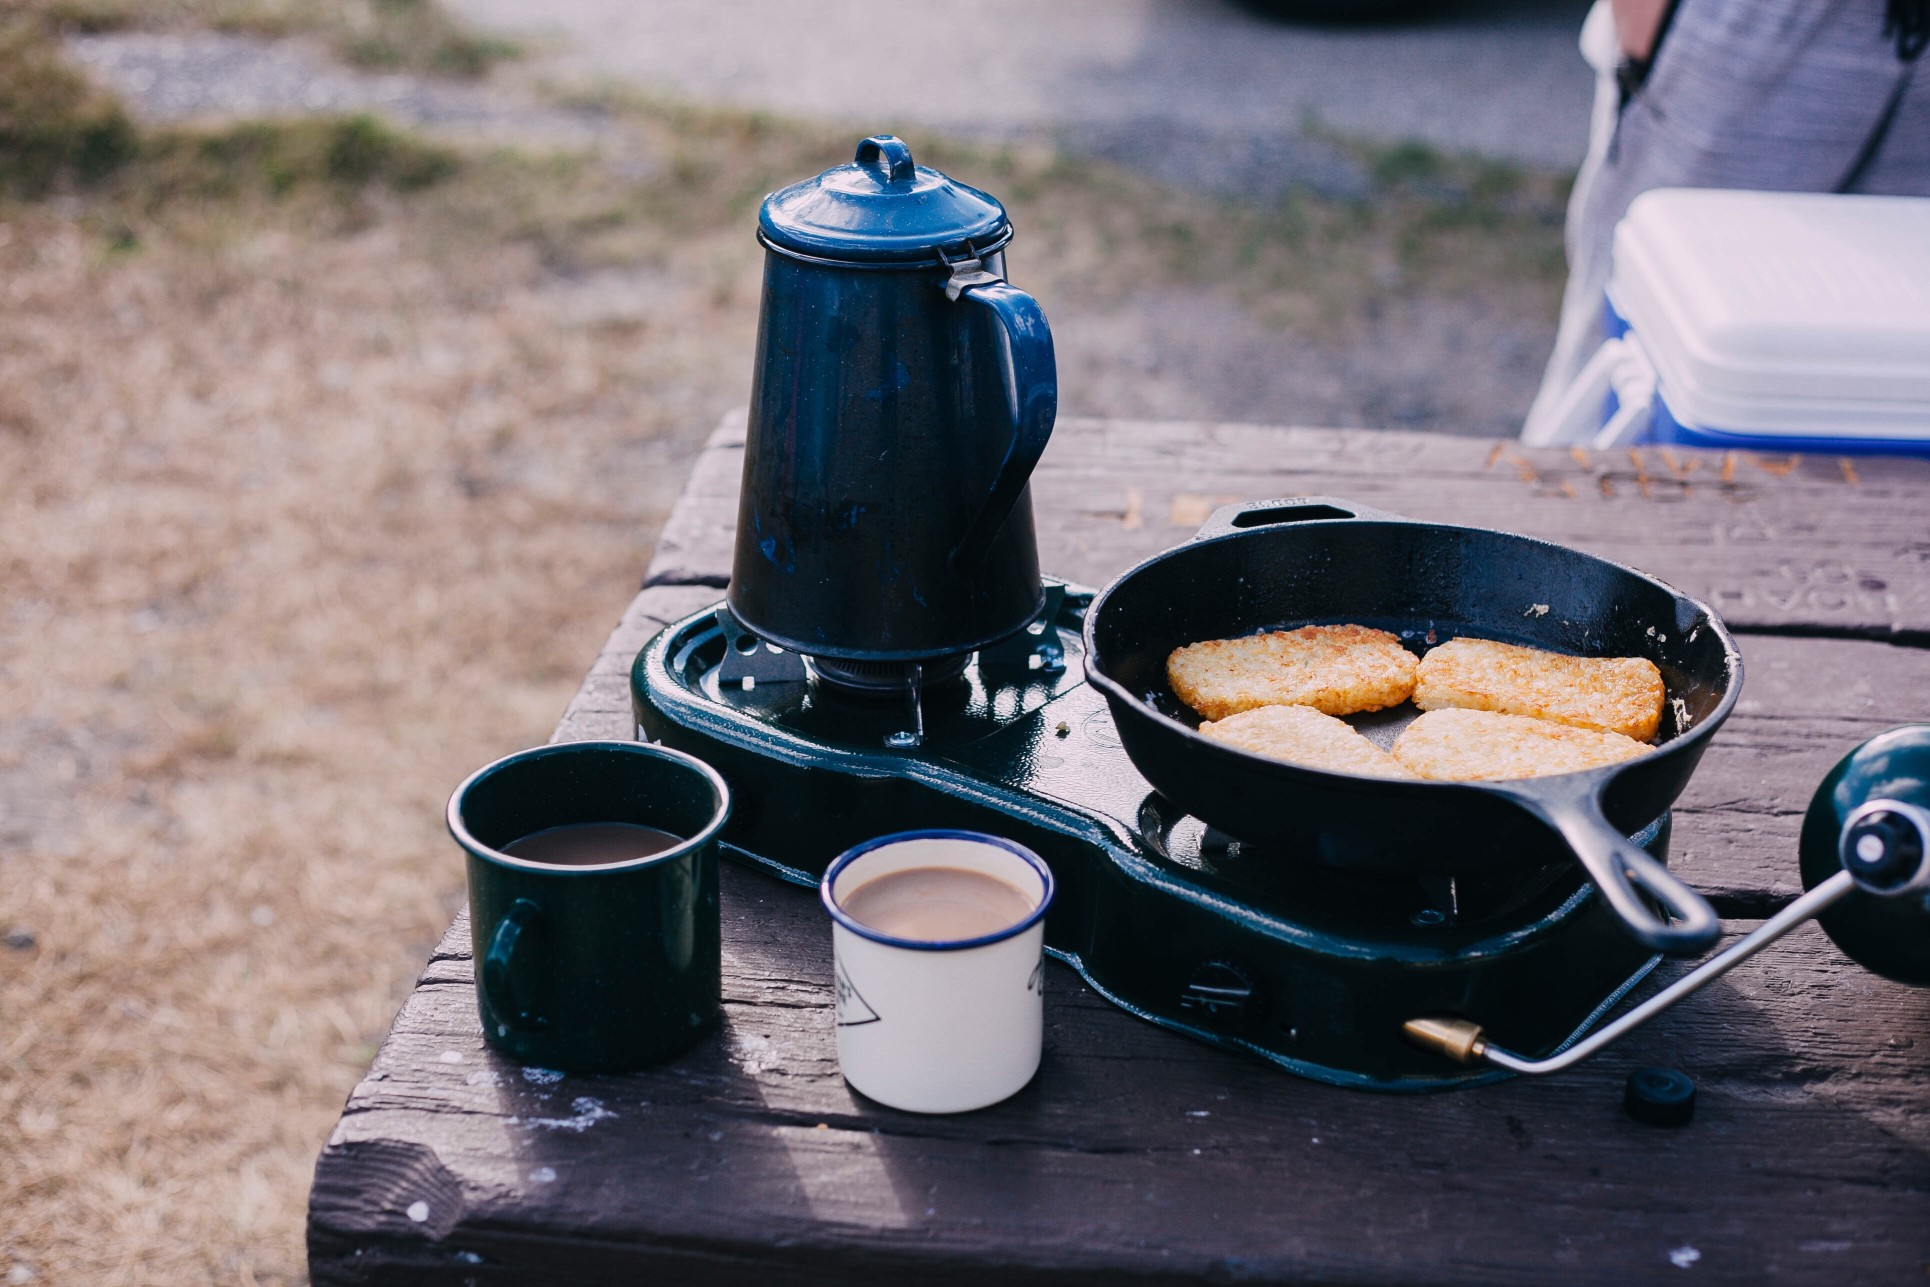 morning-coffee-at-the-campground_t20_WK0RA4